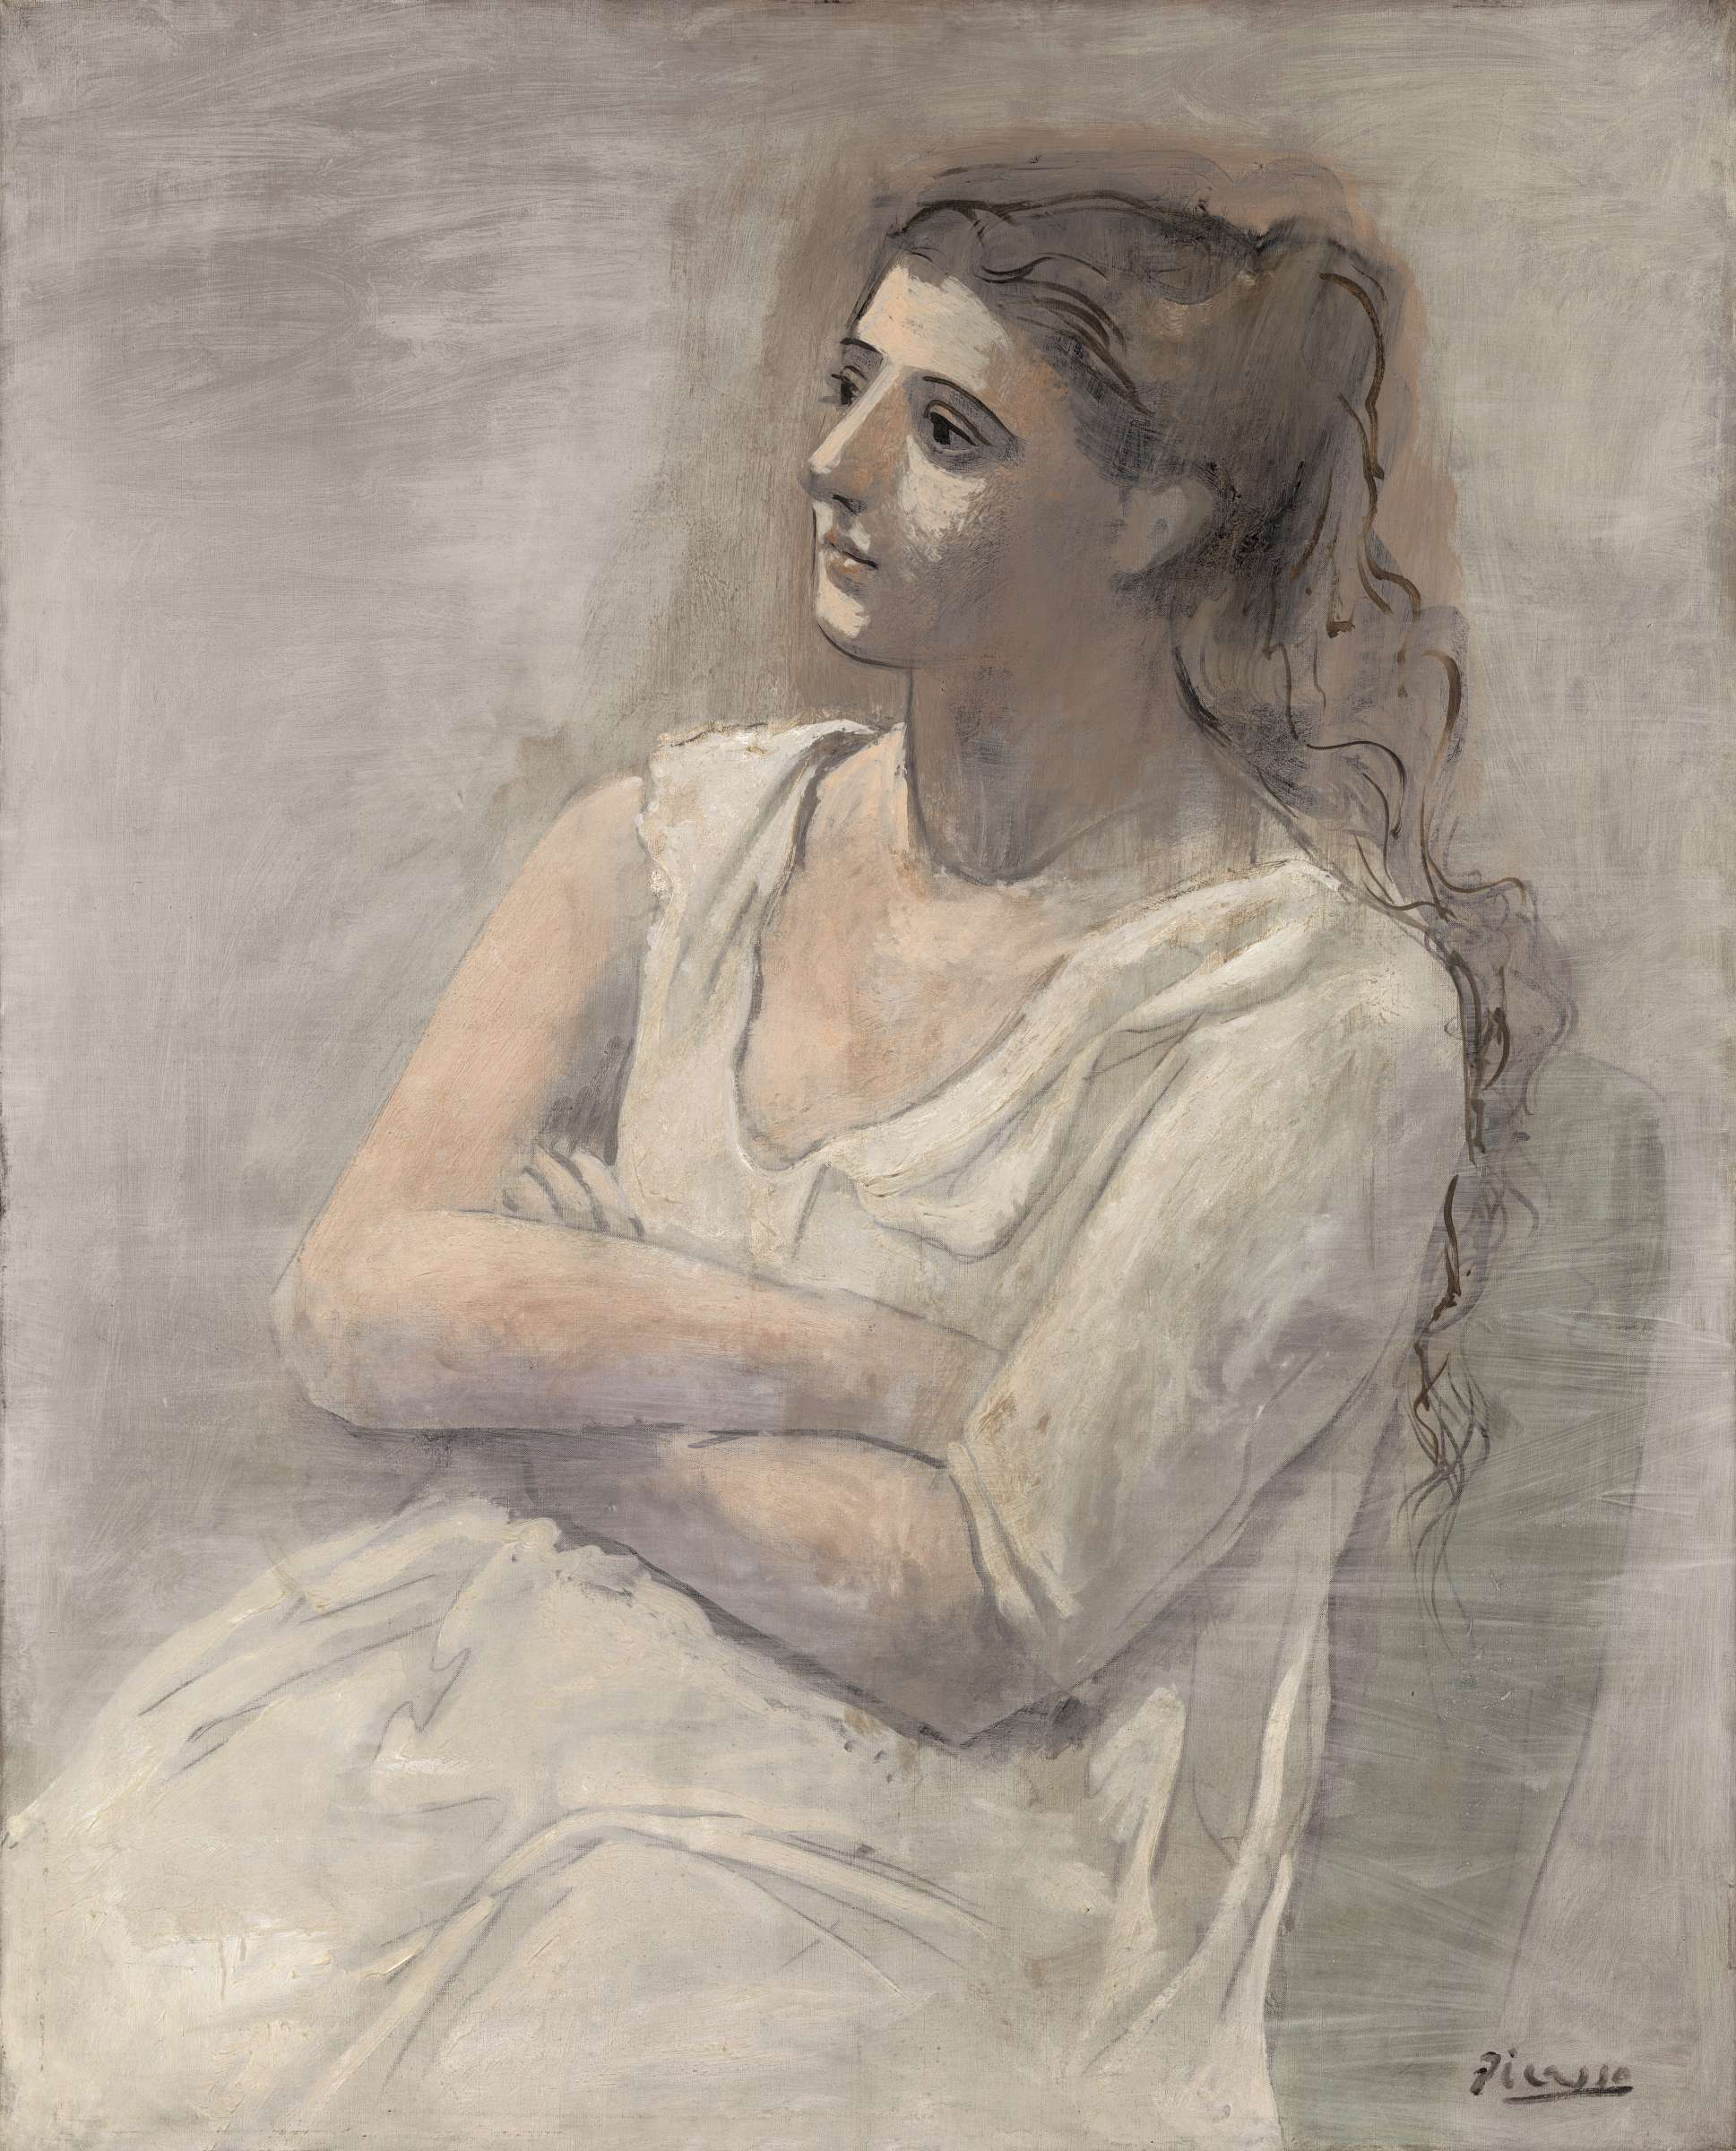 Pablo Picasso 1881 1973 Woman In White1923 Oil Water Based Paint And Crayon On Canvas The Metropolitan Museum Of Art New York